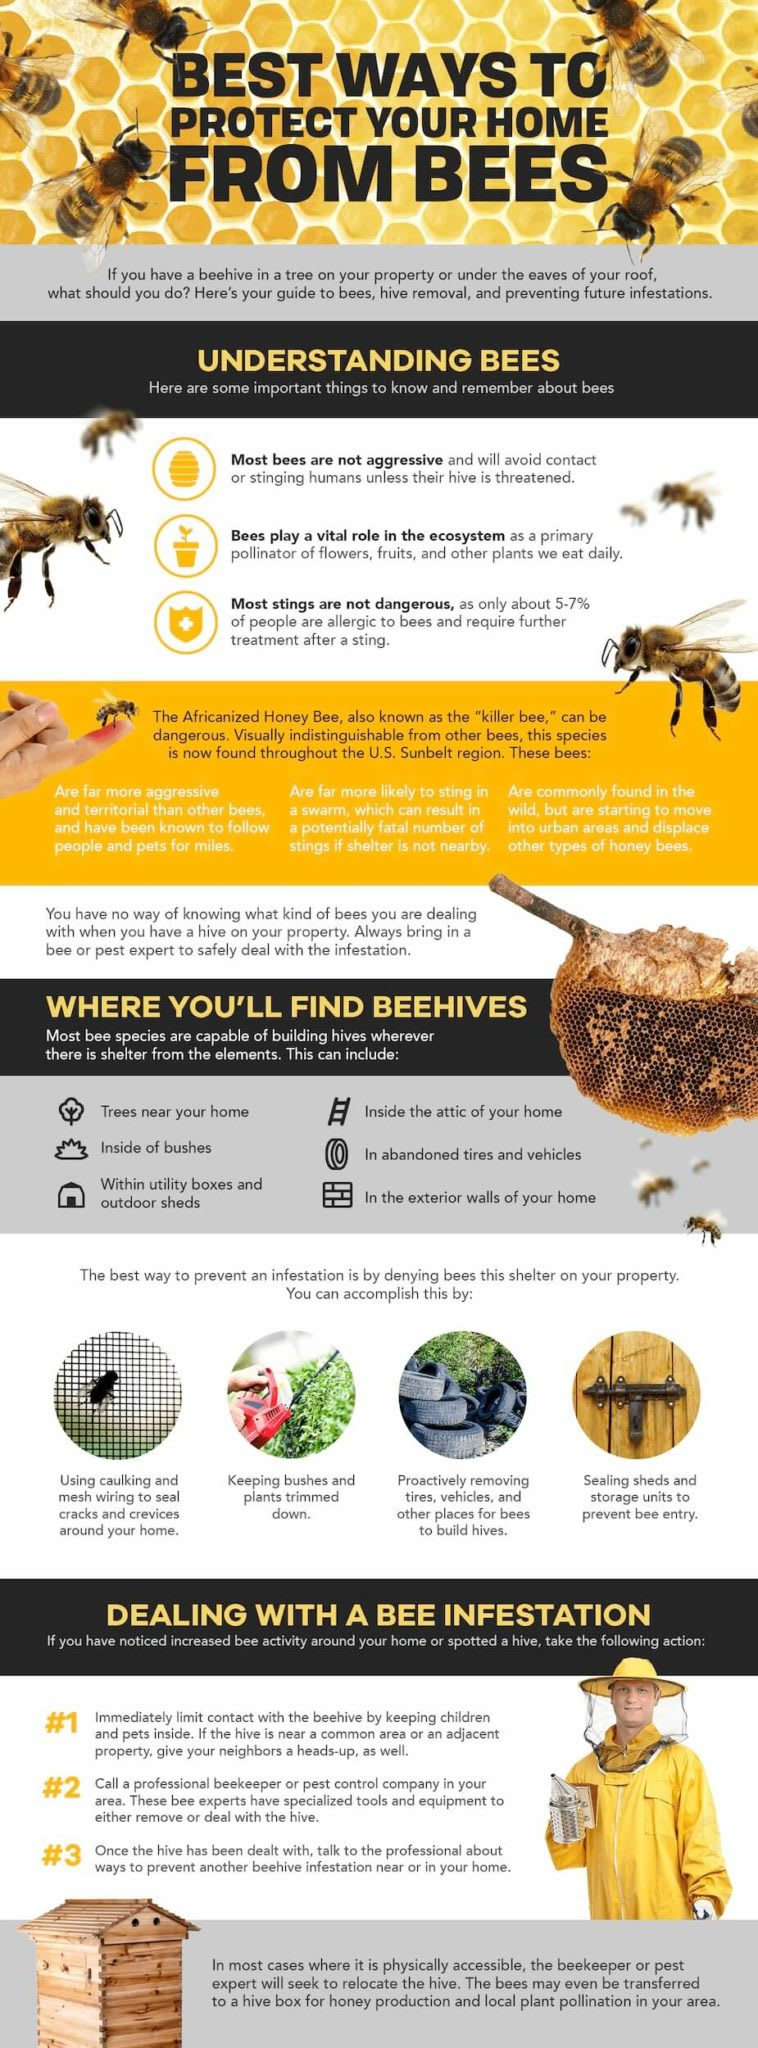 This infographic has everything you need to know about bees and beehives, as well as how you should deal with a hive near your home.